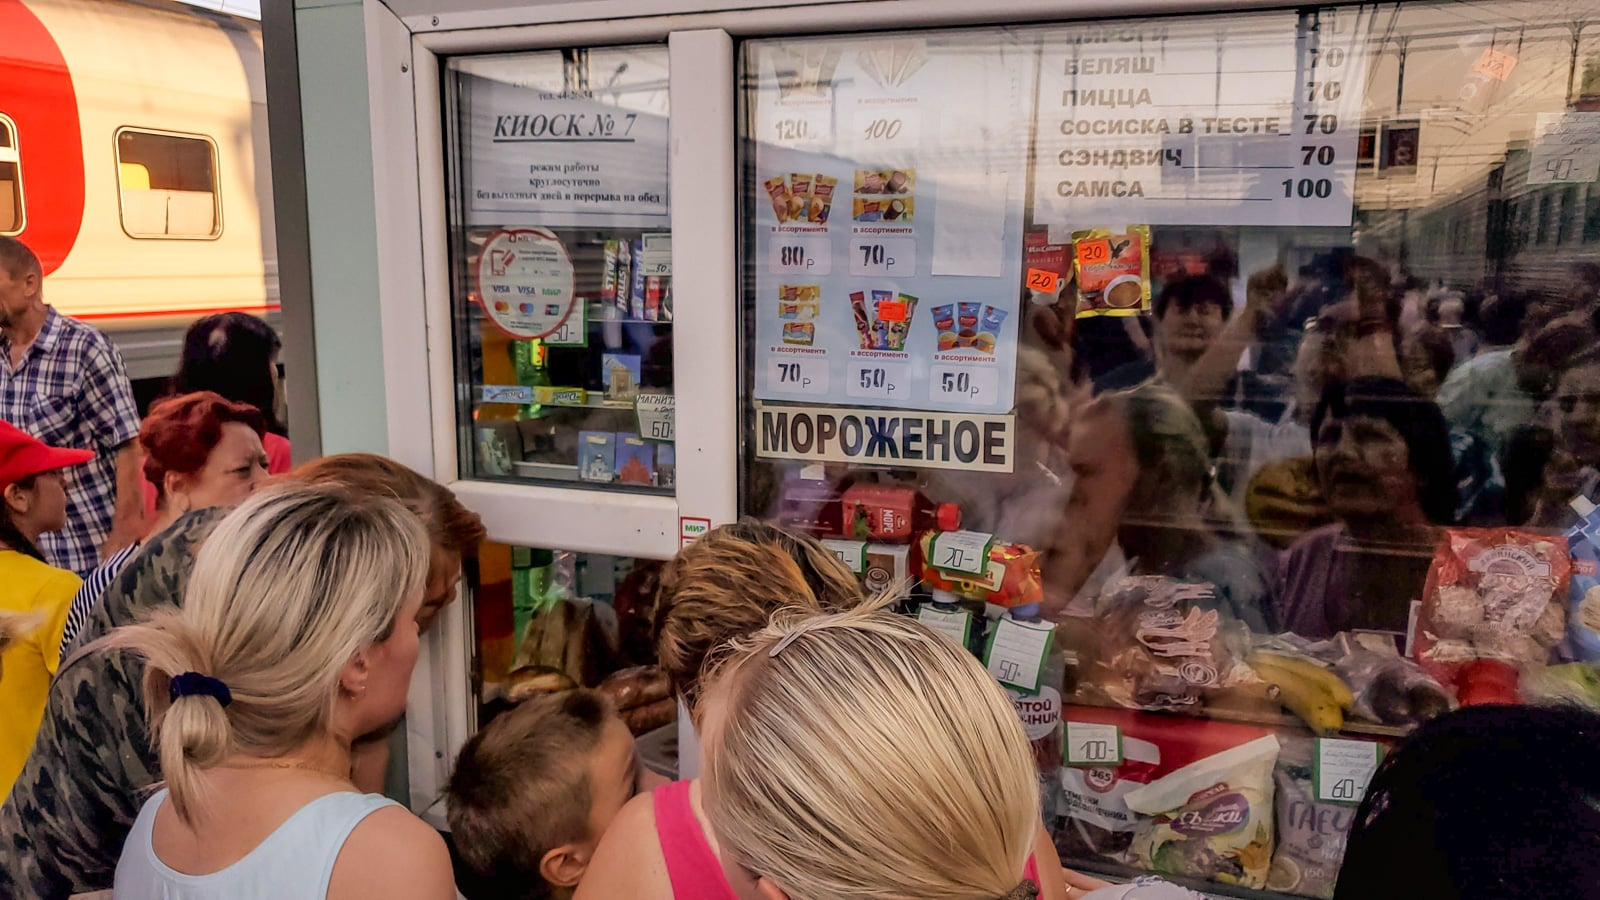 Passengers buying ice cream at a Russian train station